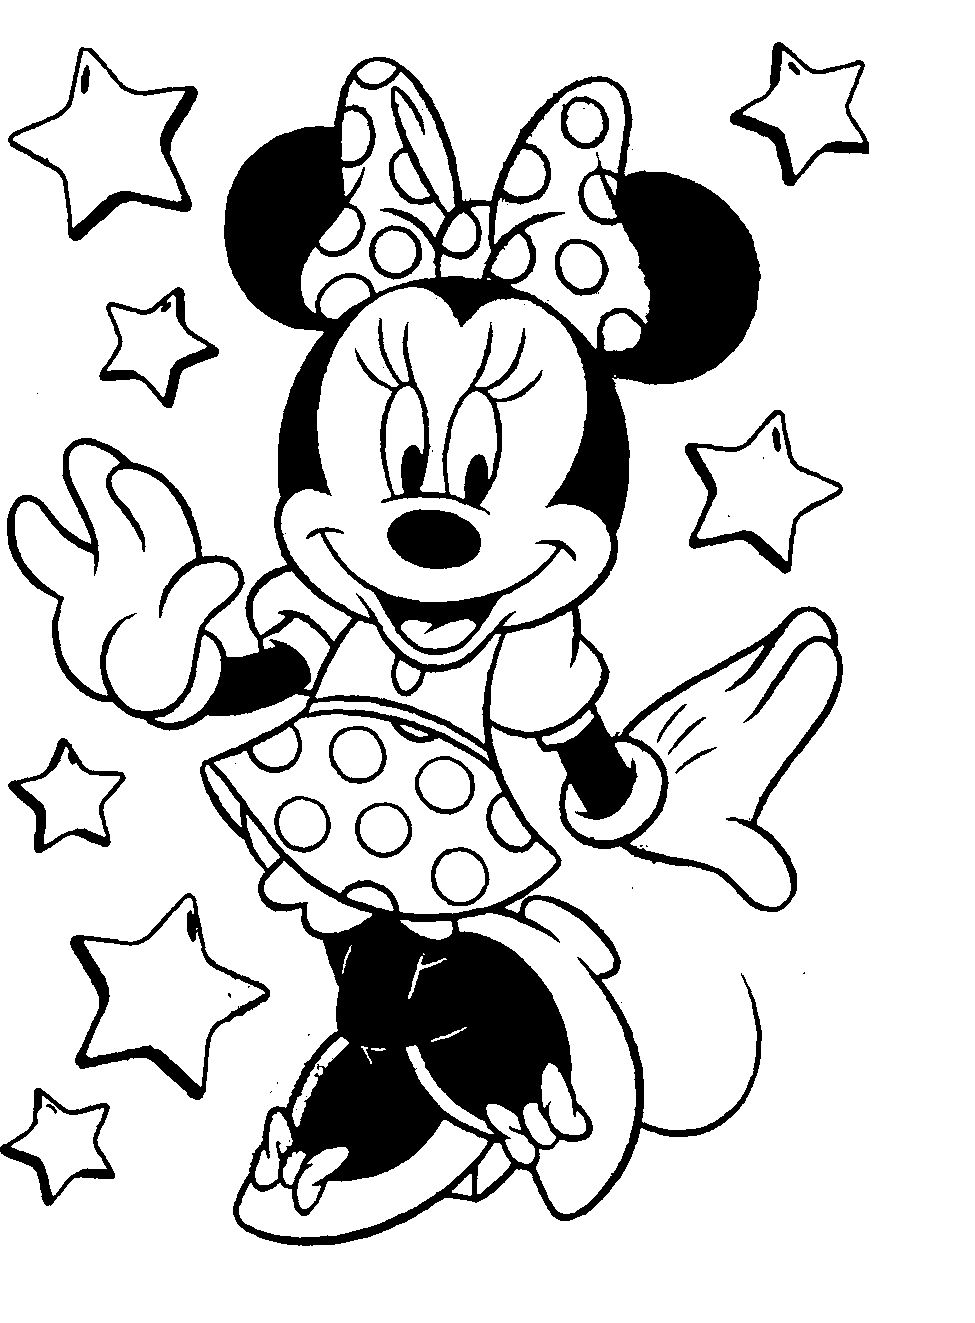 miney mouse coloring pages Pin by Karen Dauterive on Designs | Mickey mouse coloring pages  miney mouse coloring pages